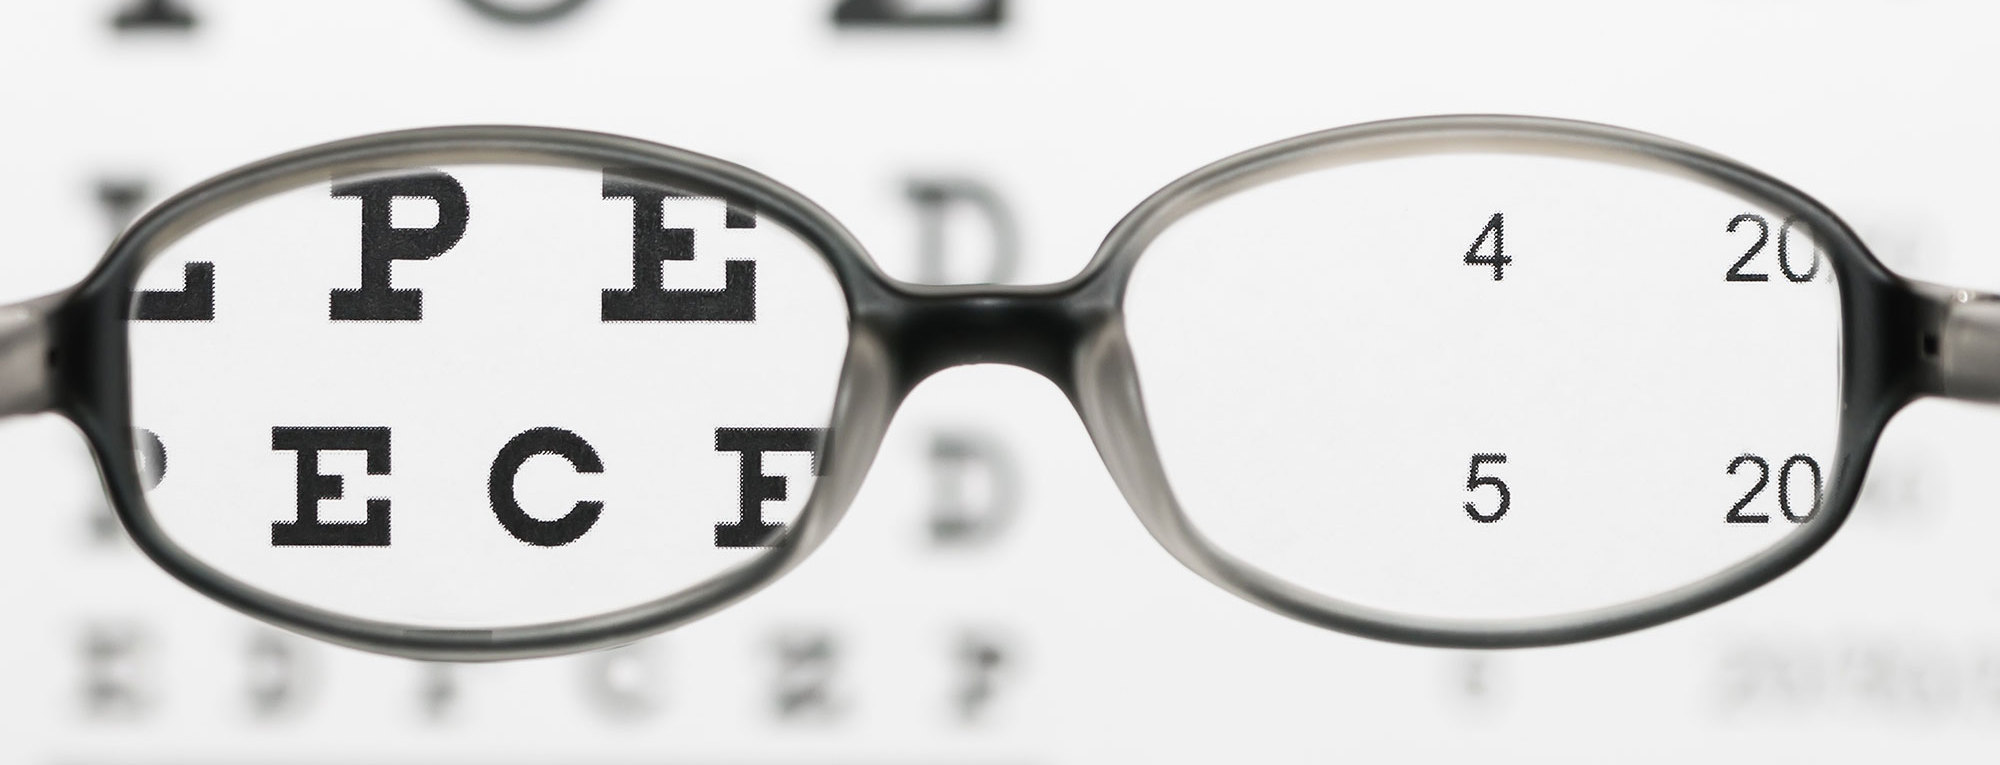 Optical examinations in Palmerston North